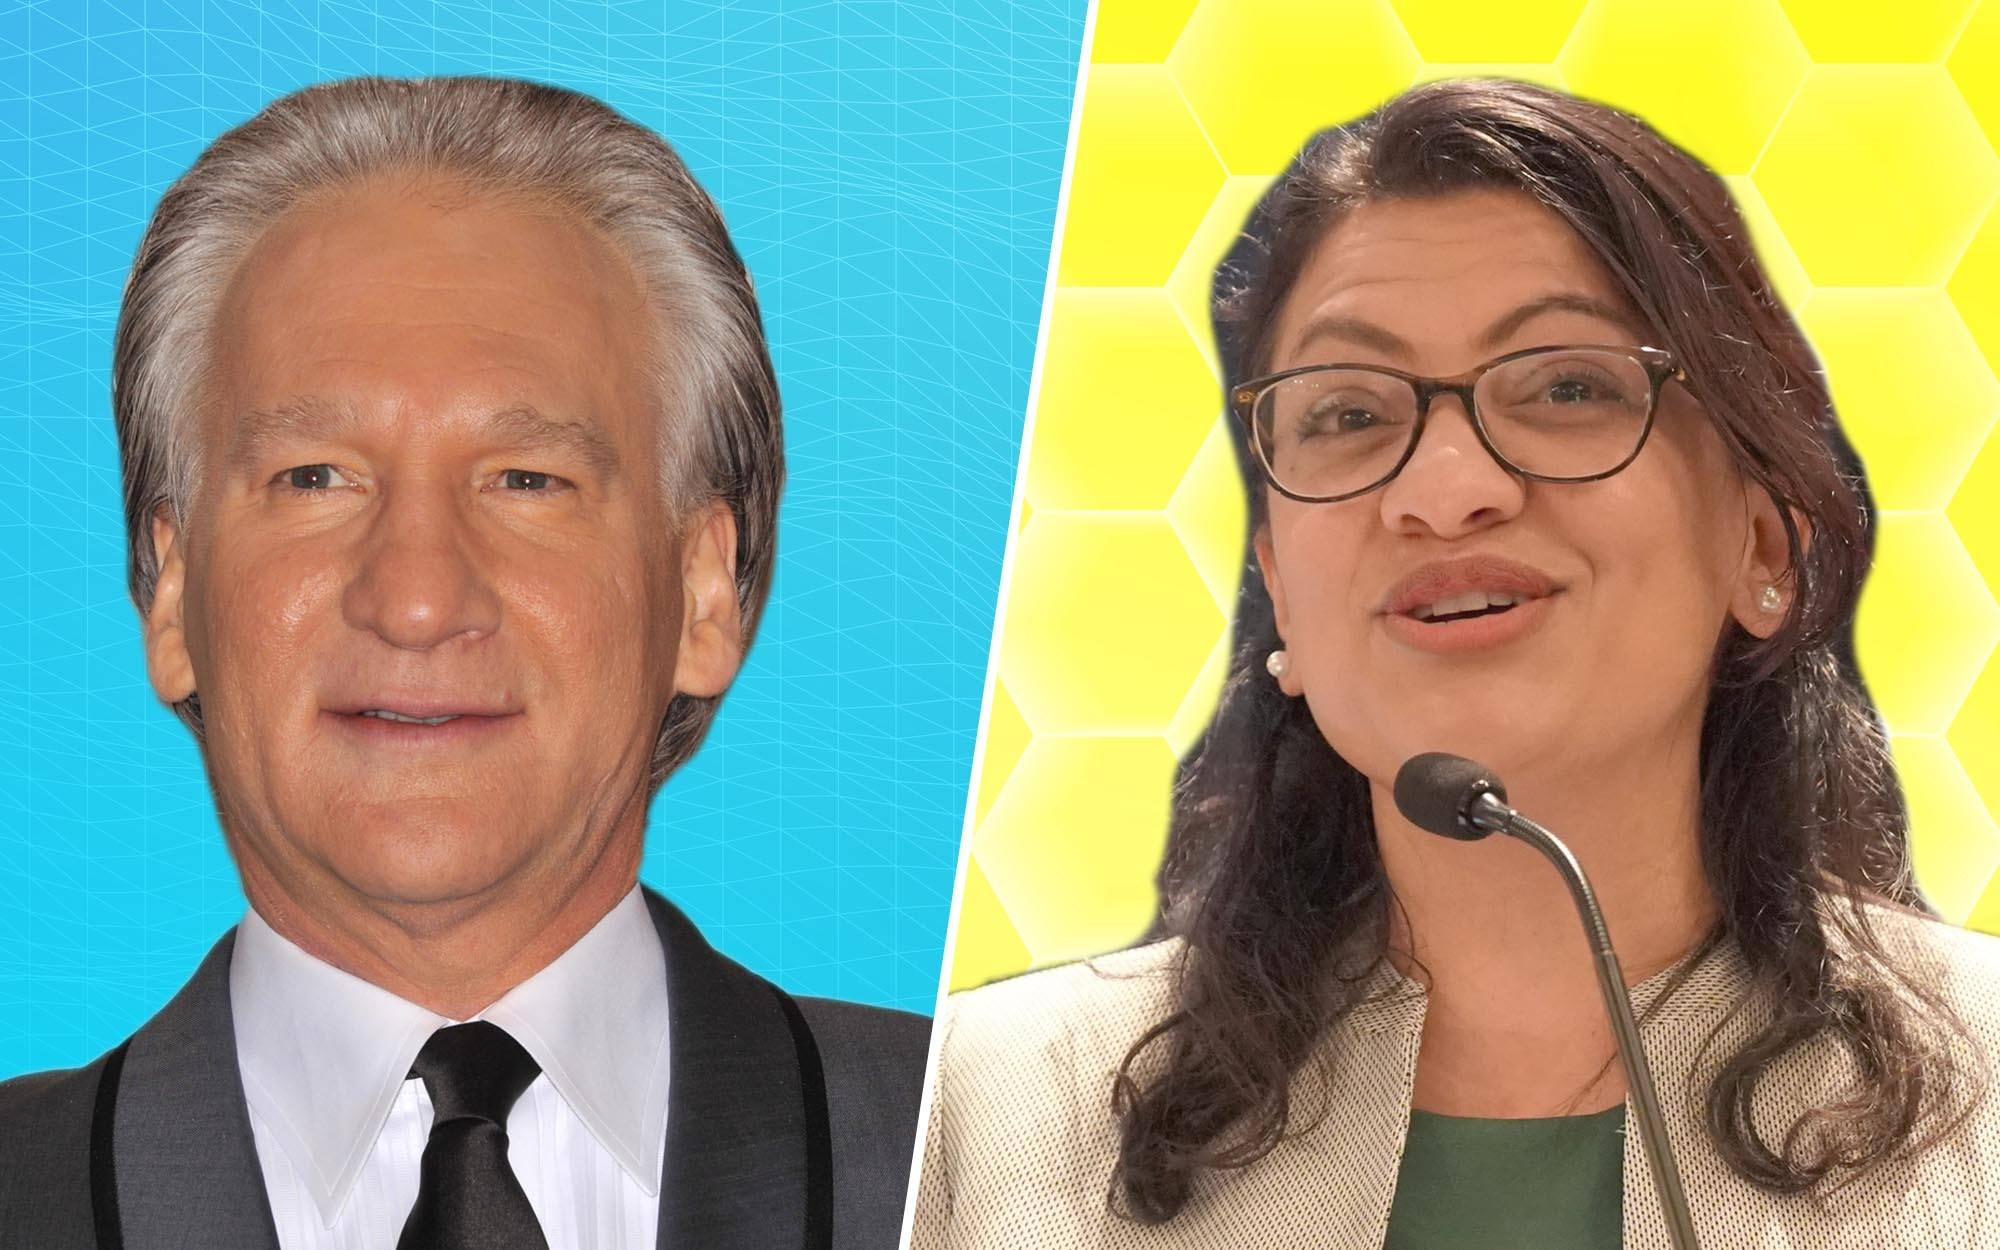 HBO's Bill Maher Fires Back at Democrat Rashida Tlaib Over Her Call for Boycott of His Show